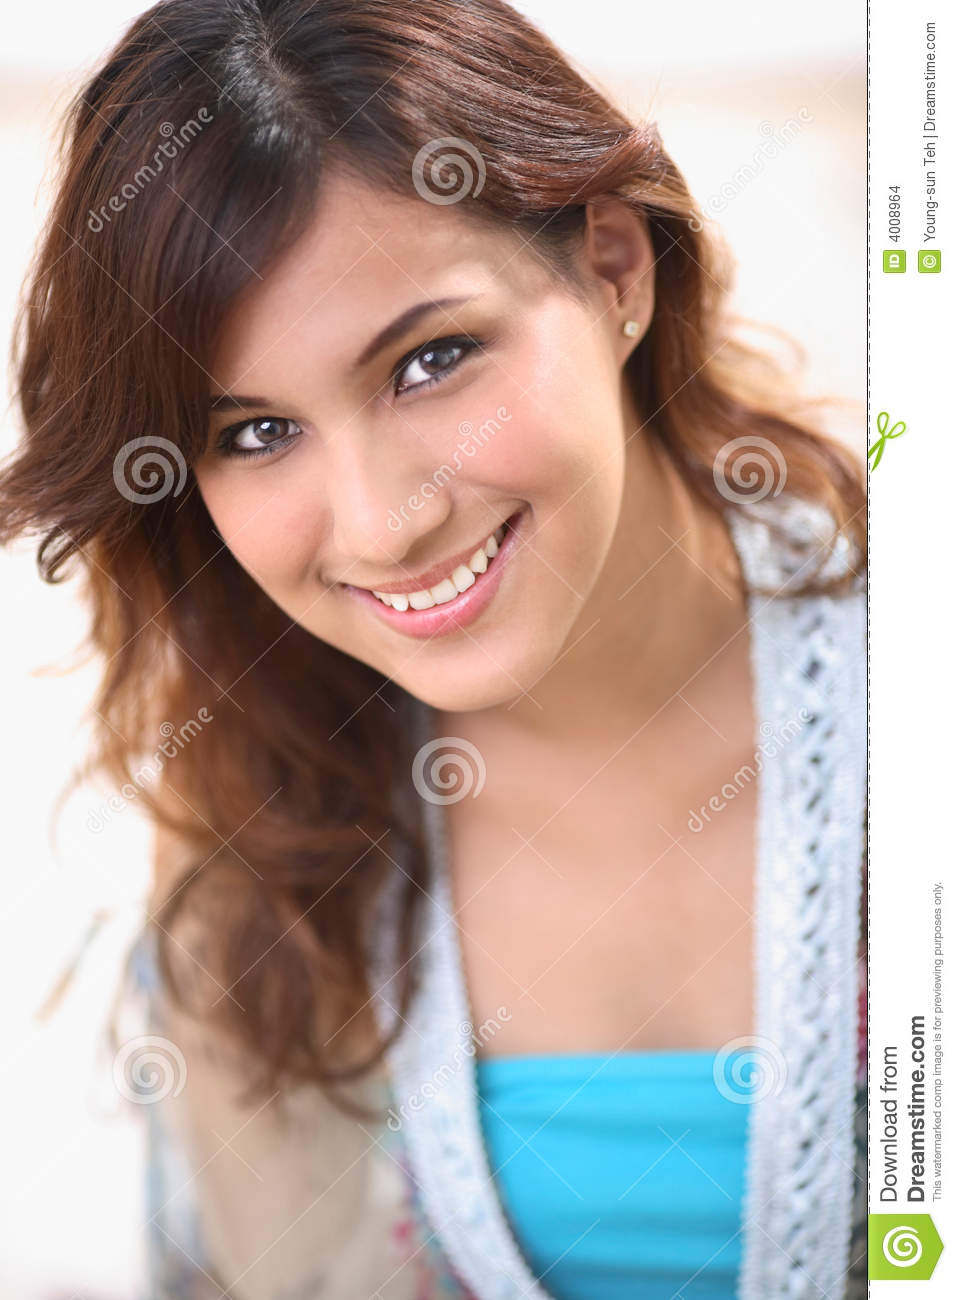 Smiling sweet woman